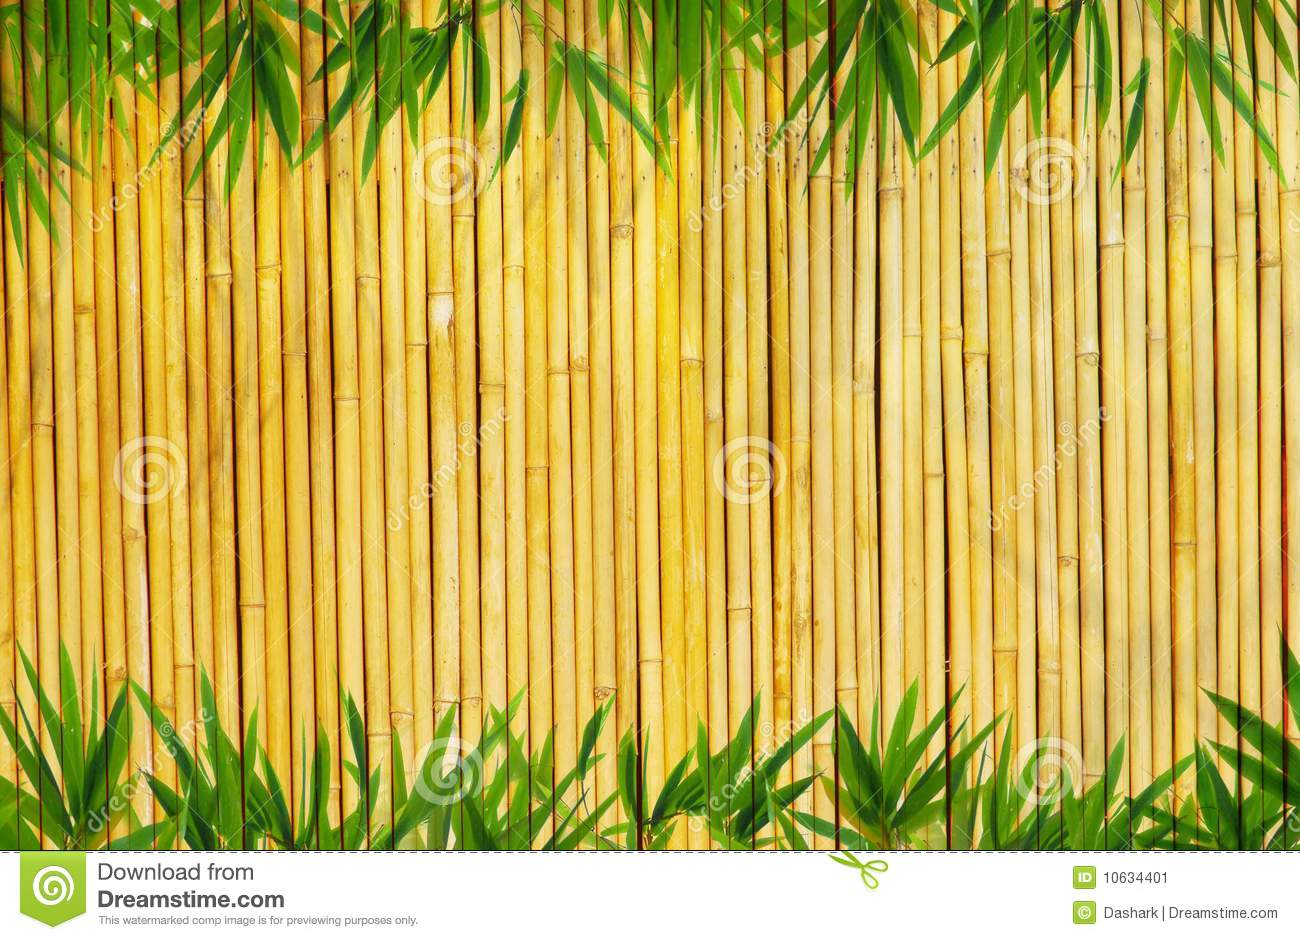 4493723 together with Watch together with Stock Image Bamboo Background Image10634401 likewise The Top 10 Cultural Things To Do And See In Tsim Sha Tsui likewise Bamboo Float Coffee Table. on bamboo bar